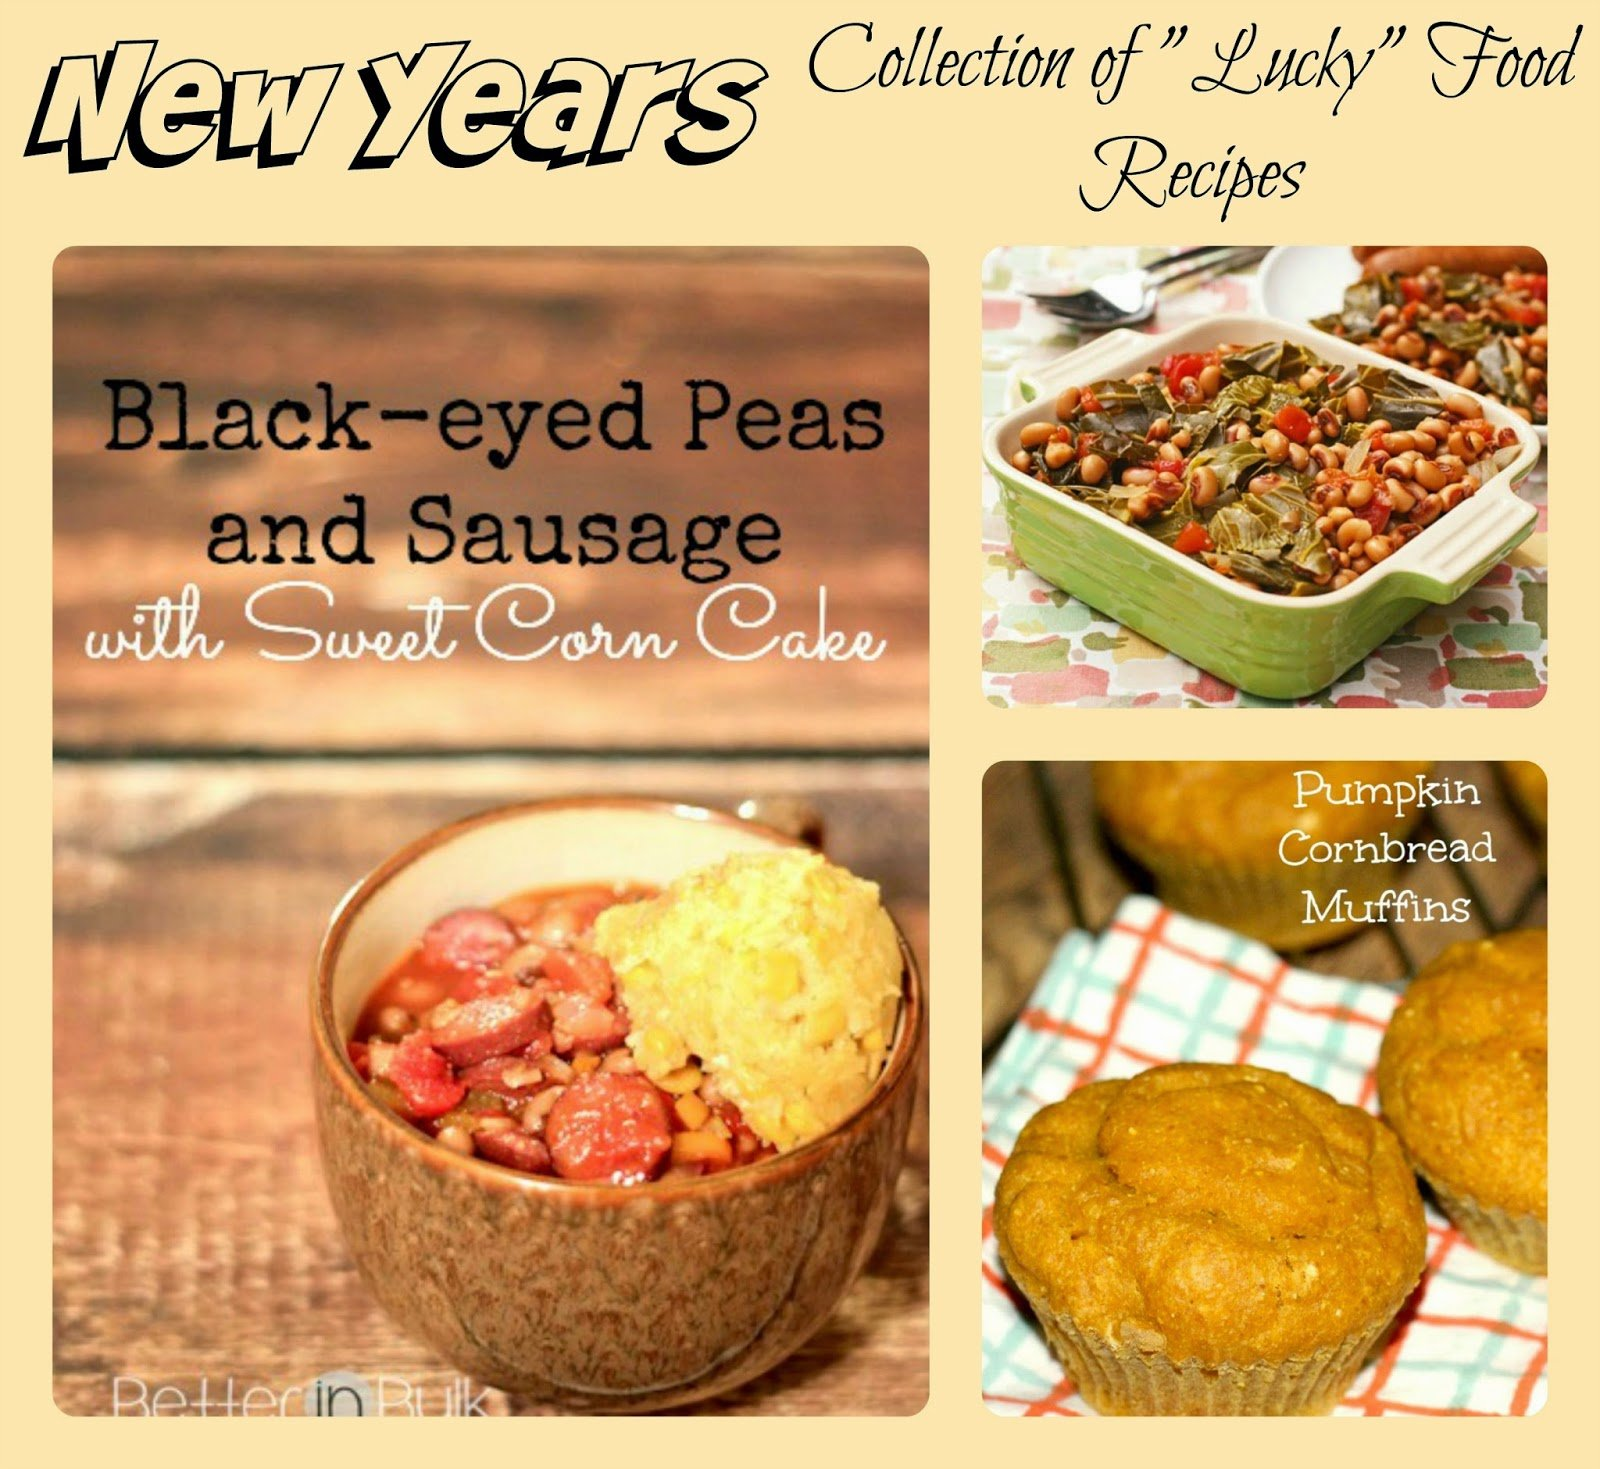 New years day recipes a collection of lucky food recipes if you are looking for lucky new year food recipes healthy new years day recipe new years food recipes or new year appetizer recipes then you have come forumfinder Gallery